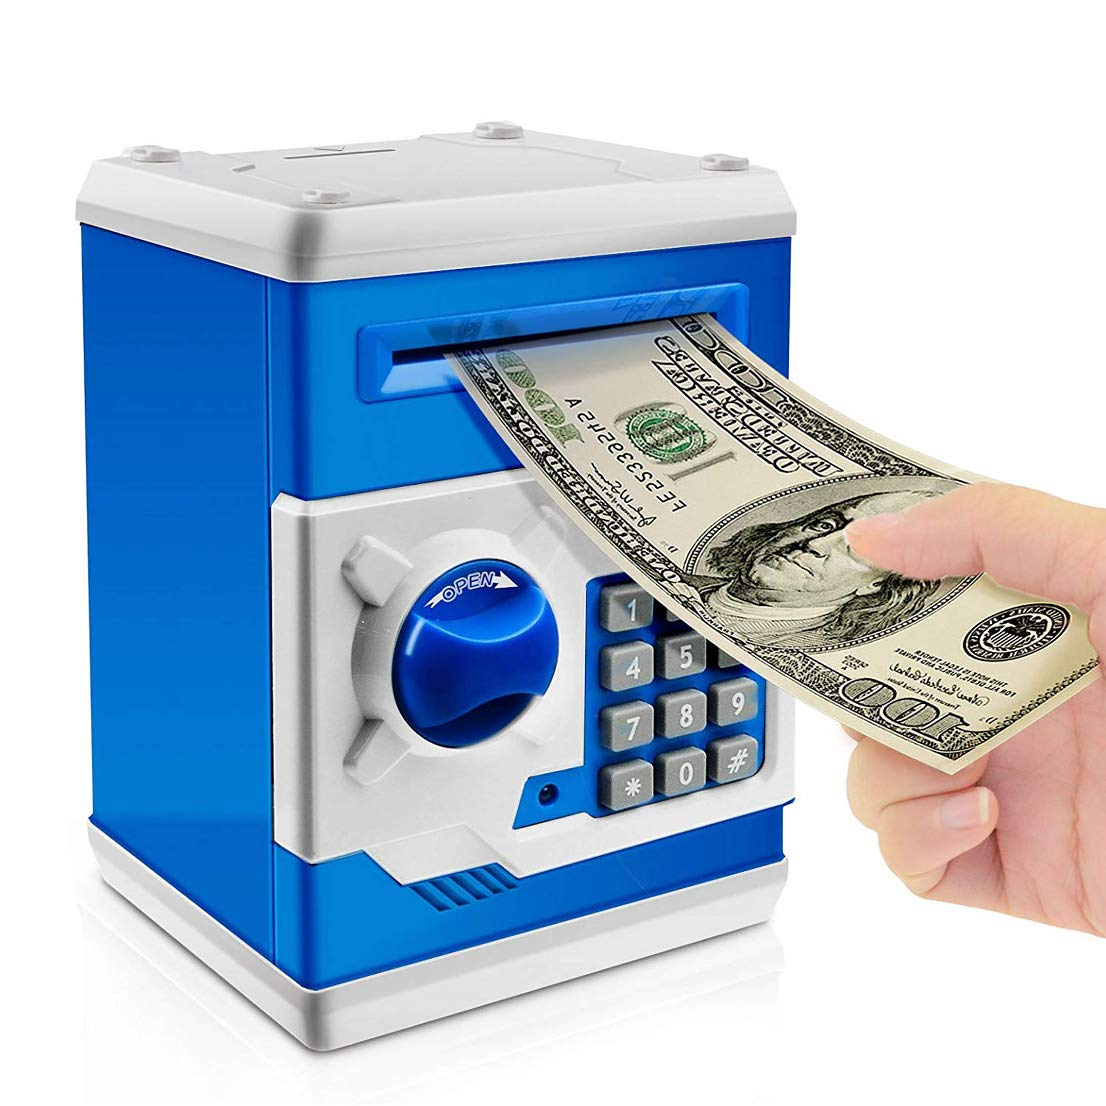 whatswhats Cash Coin Saving Piggy Bank Electric ATM Money Safe Box with Password Combination Lock Toy Gift for Kids and Adults - Blue and White